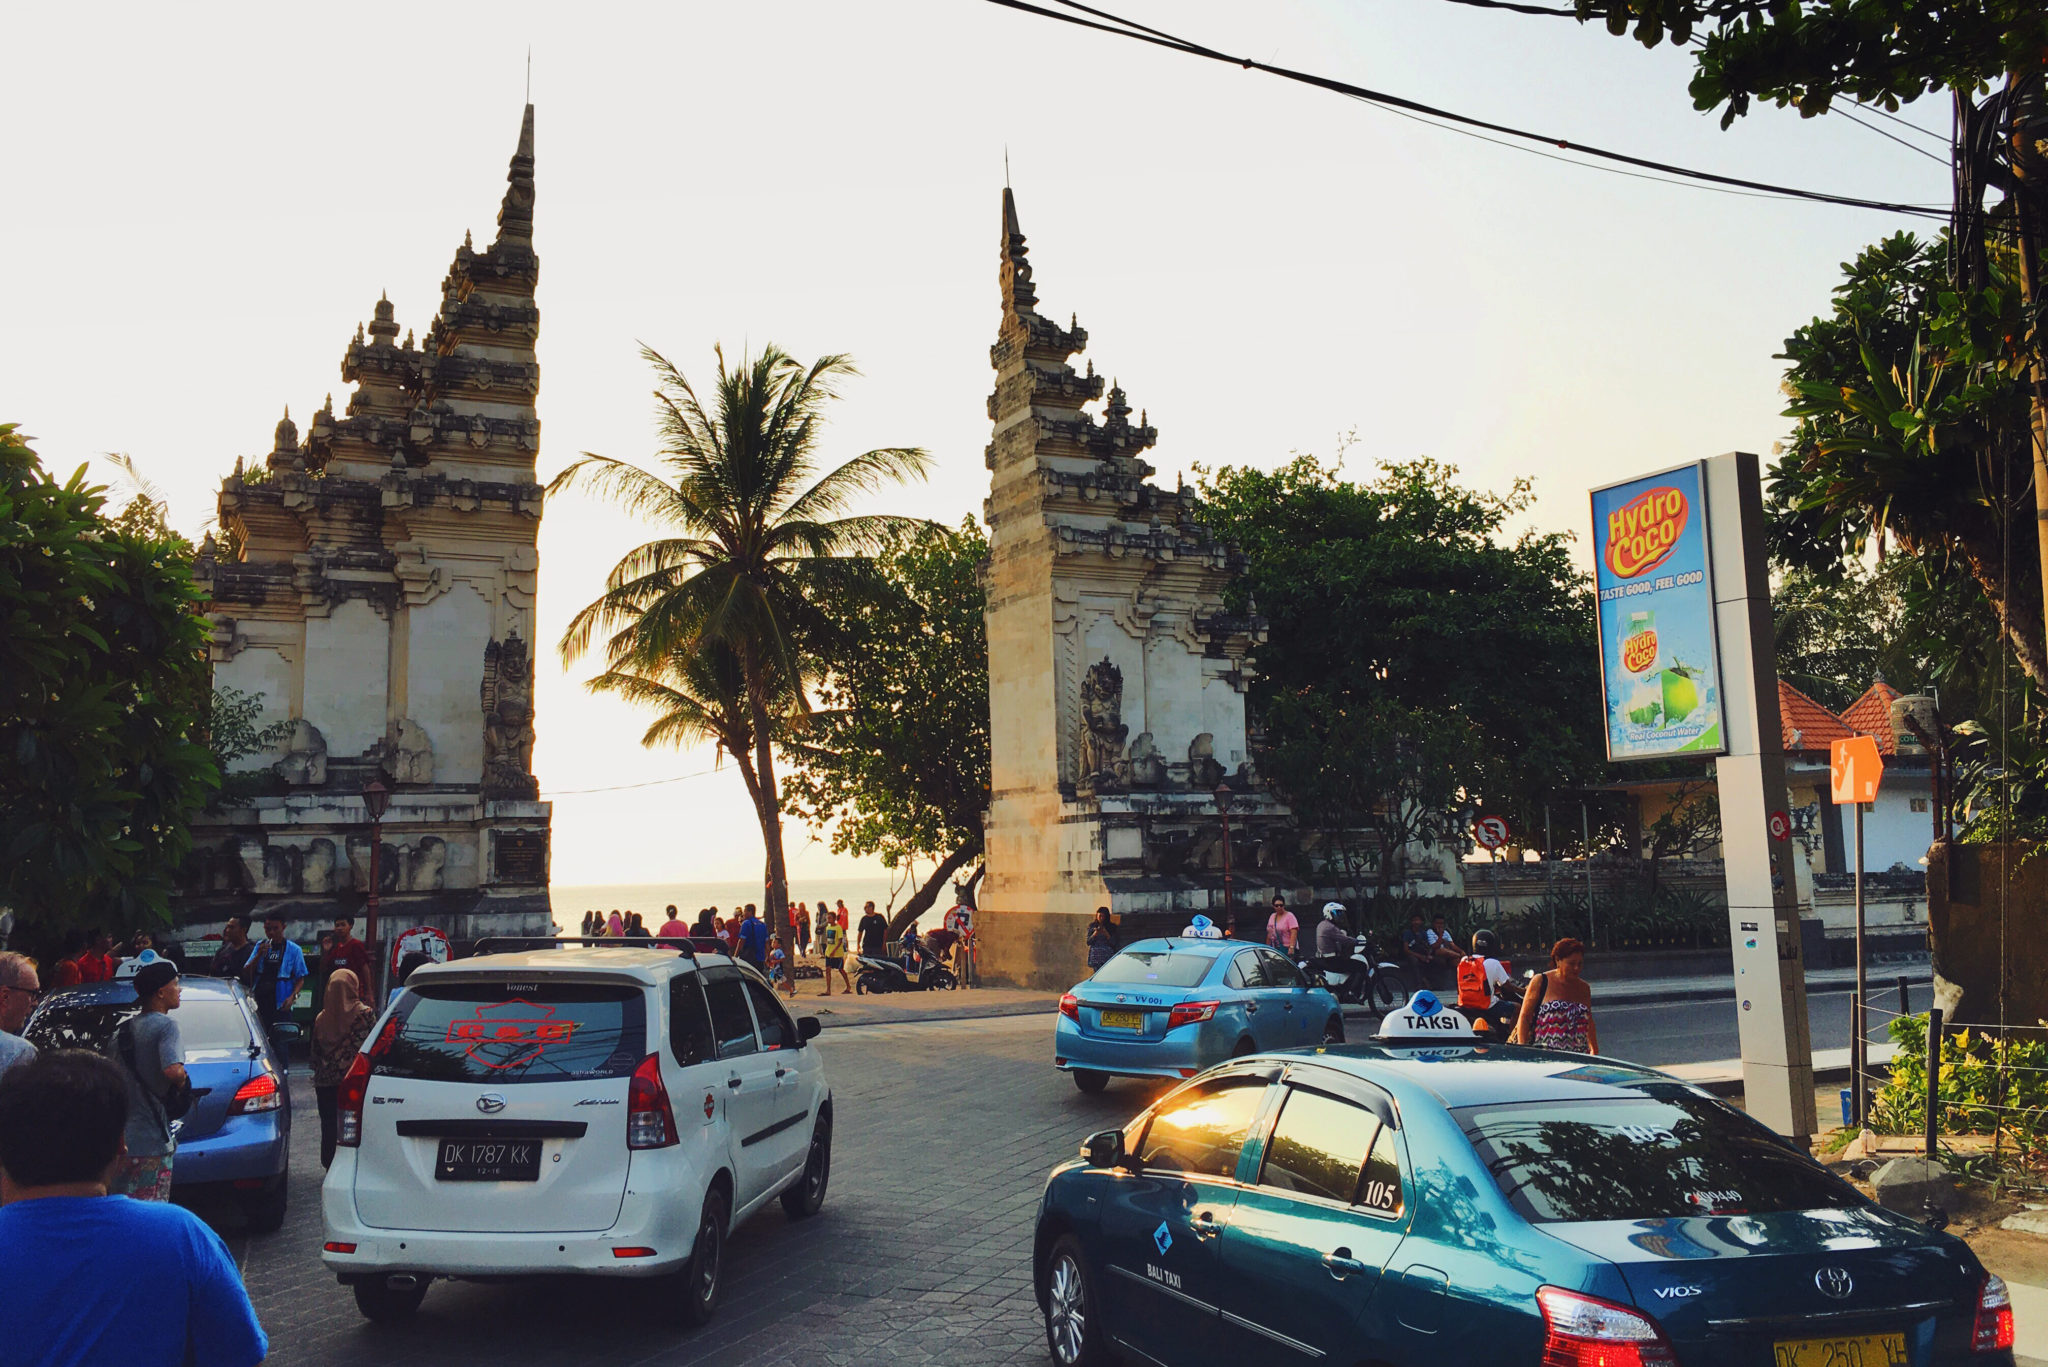 Indonesia-travel-guide-Kuta-Bali